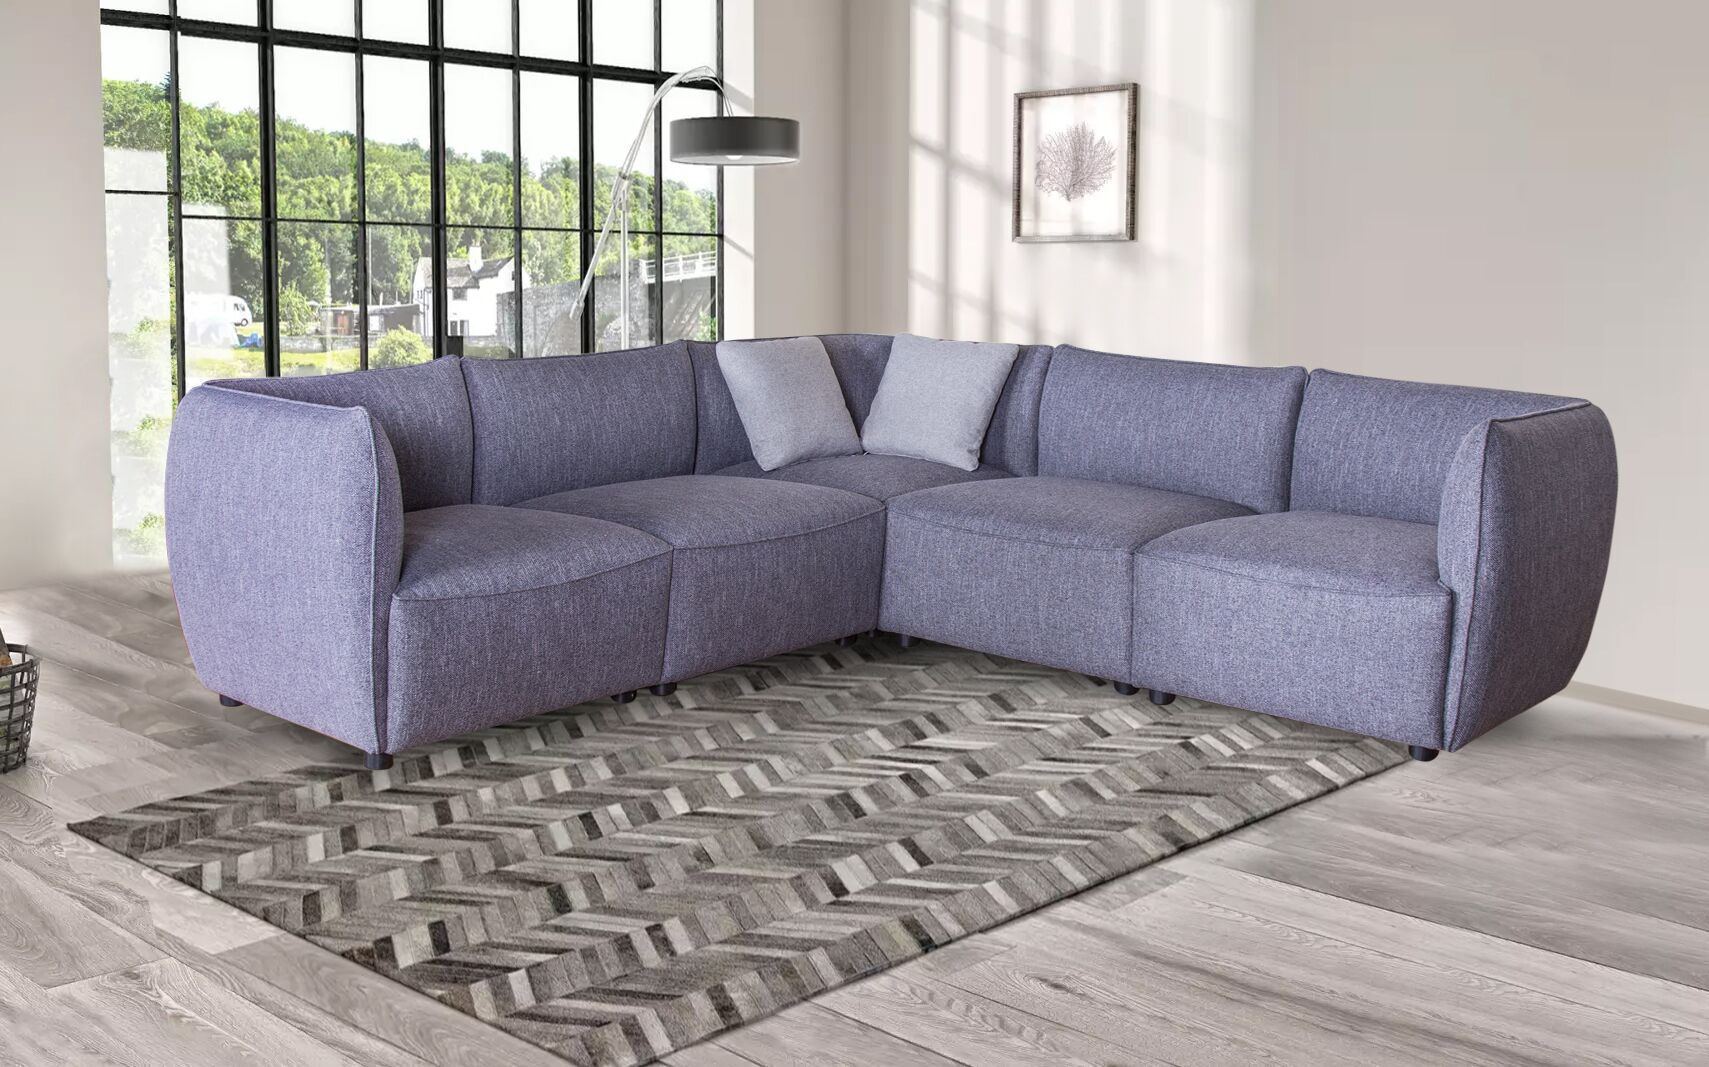 Modern casual fabric sofa